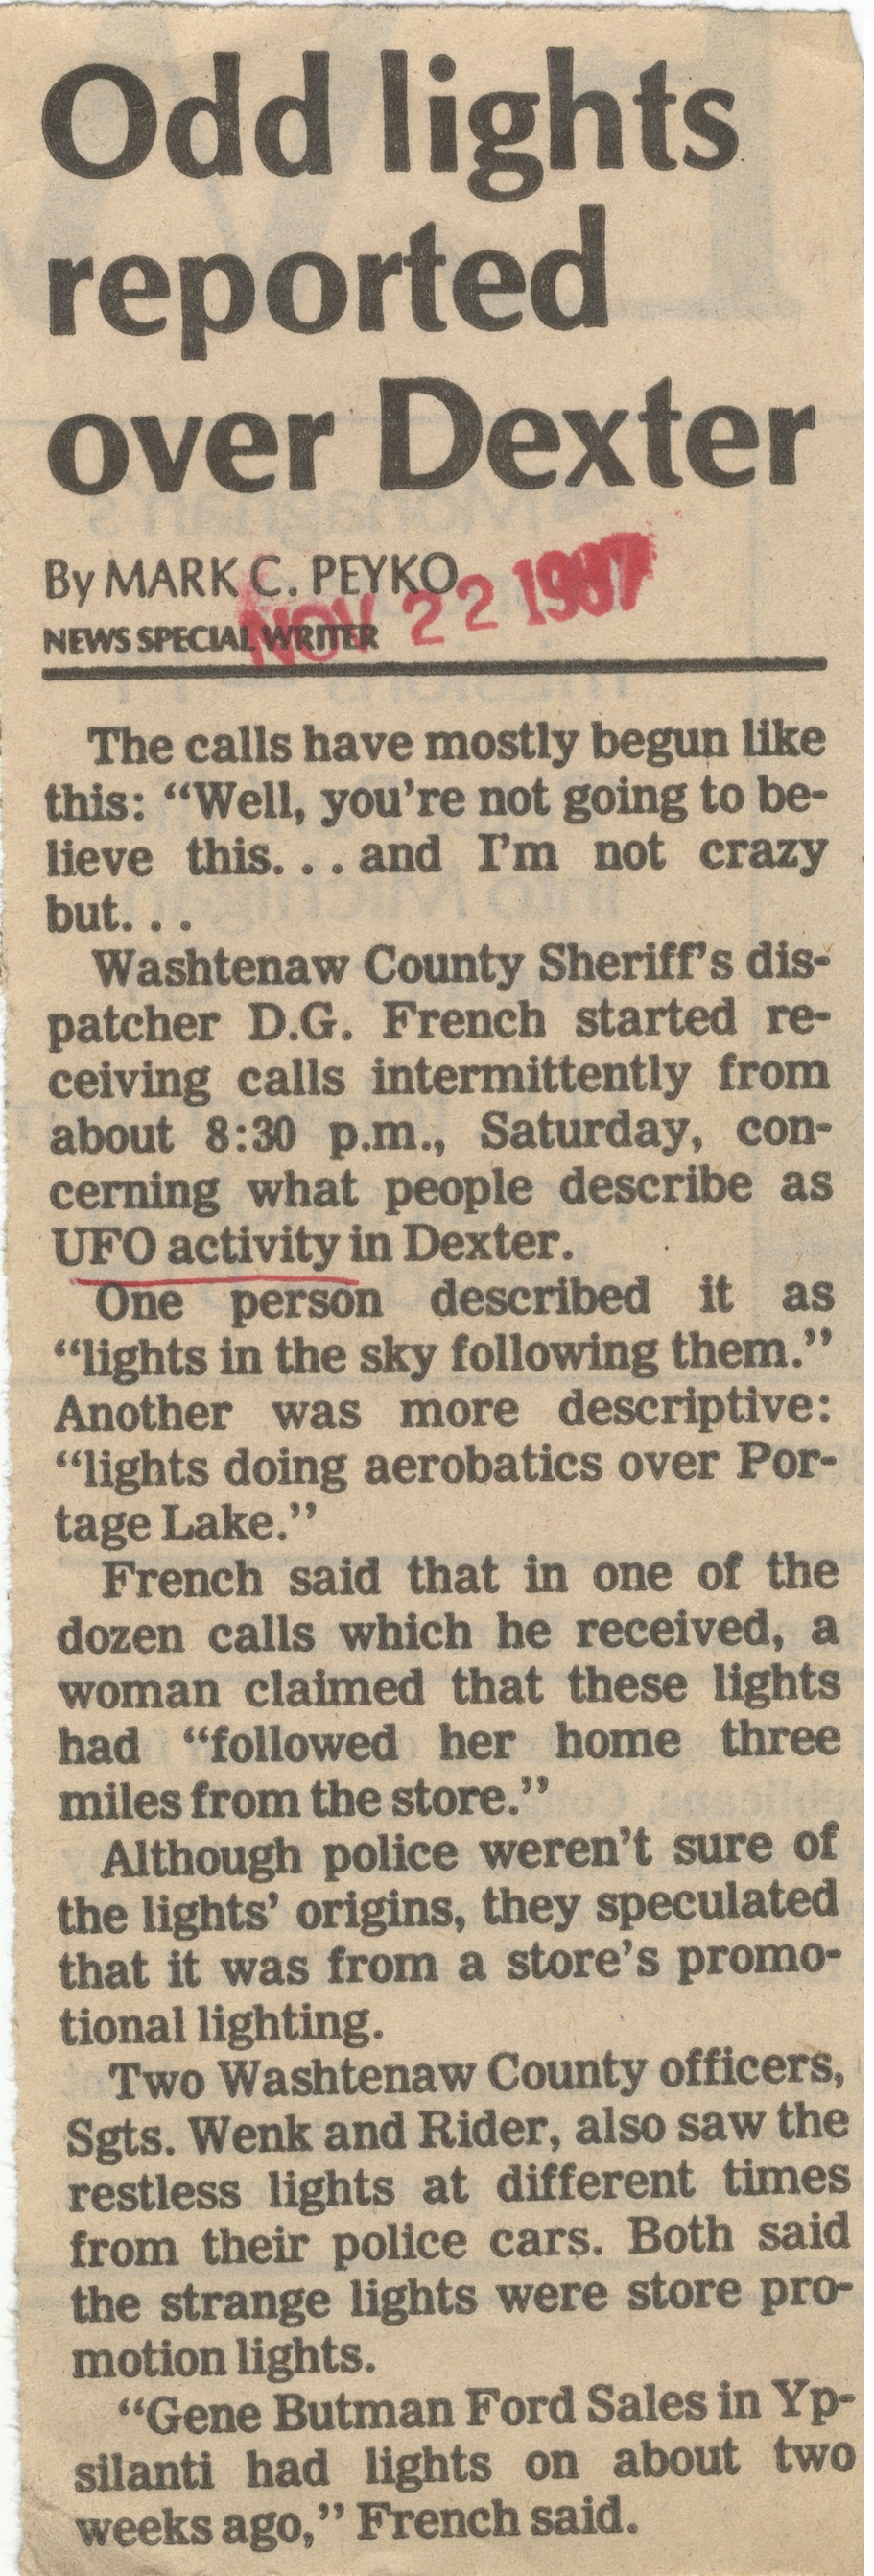 Odd Lights Reported Over Dexter image